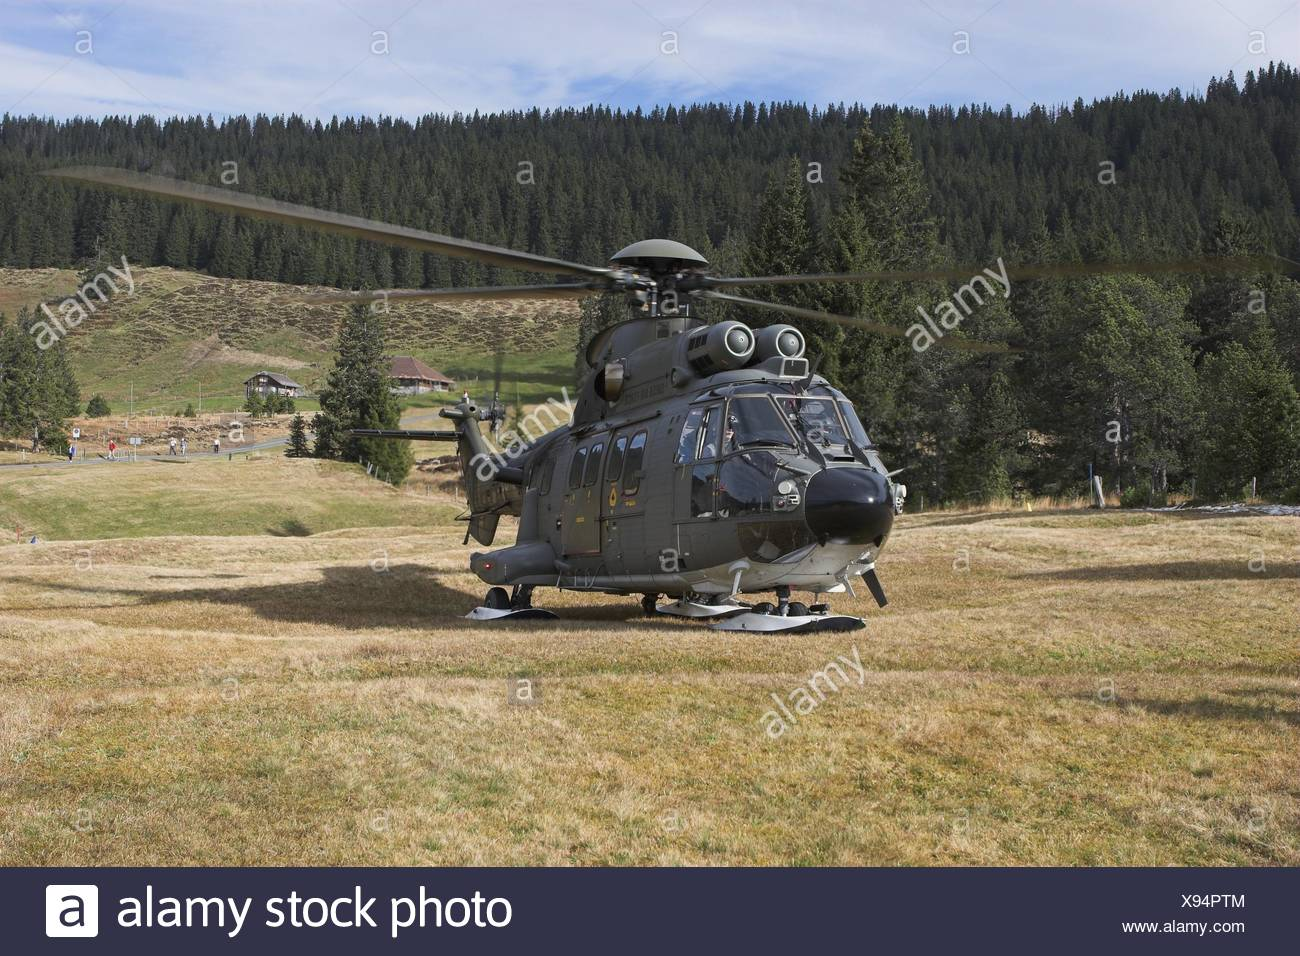 mountains alps aircrafts switzerland manoeuvre helicopter fascination - Stock Image